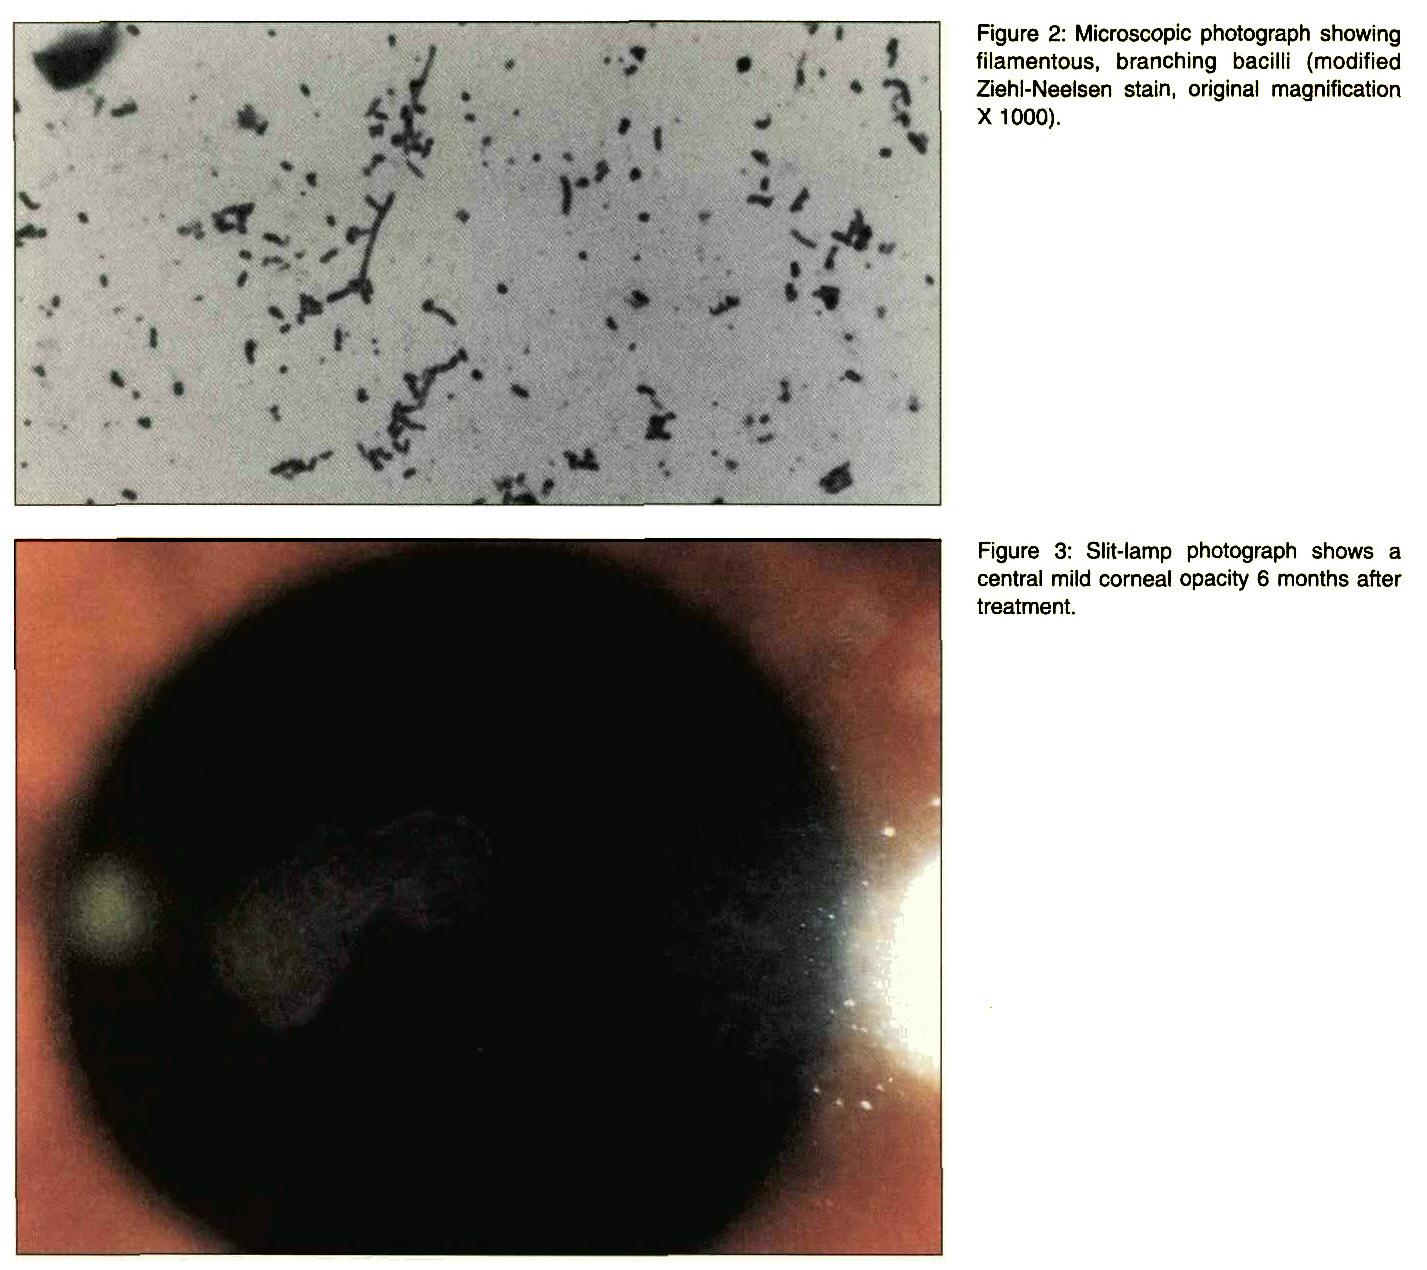 Figure 2: Microscopic photograph showing filamentous, branching bacilli (modified Ziehl-Neelsen stain, original magnification X 1000).Figure 3: Slit-lamp photograph shows a central mild corneal opacity 6 months after treatment.